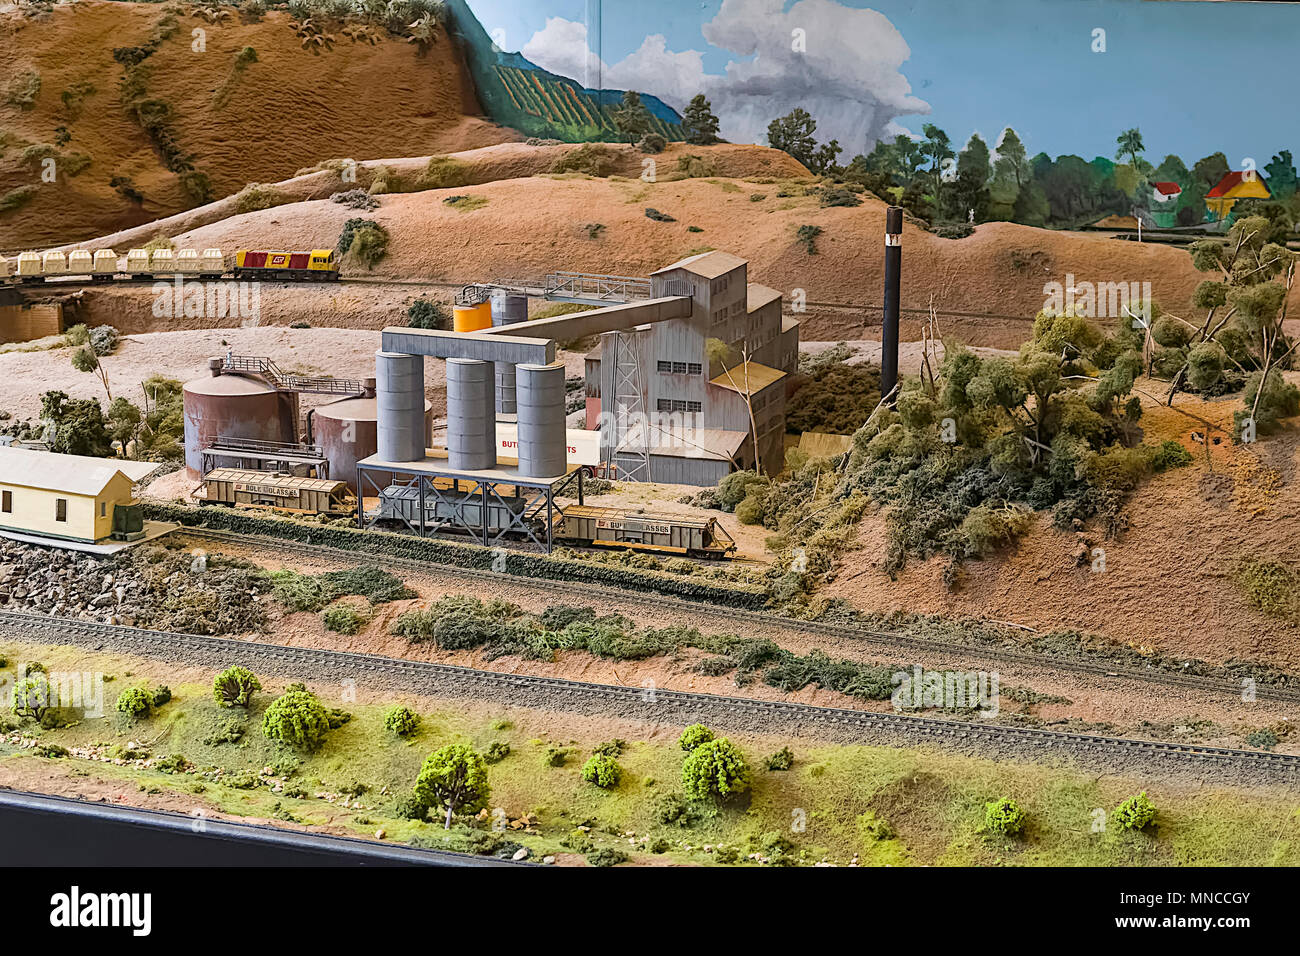 A small section of a huge model railway layout. Every detail is as authentis as possible and maintained by volunteers - Stock Image